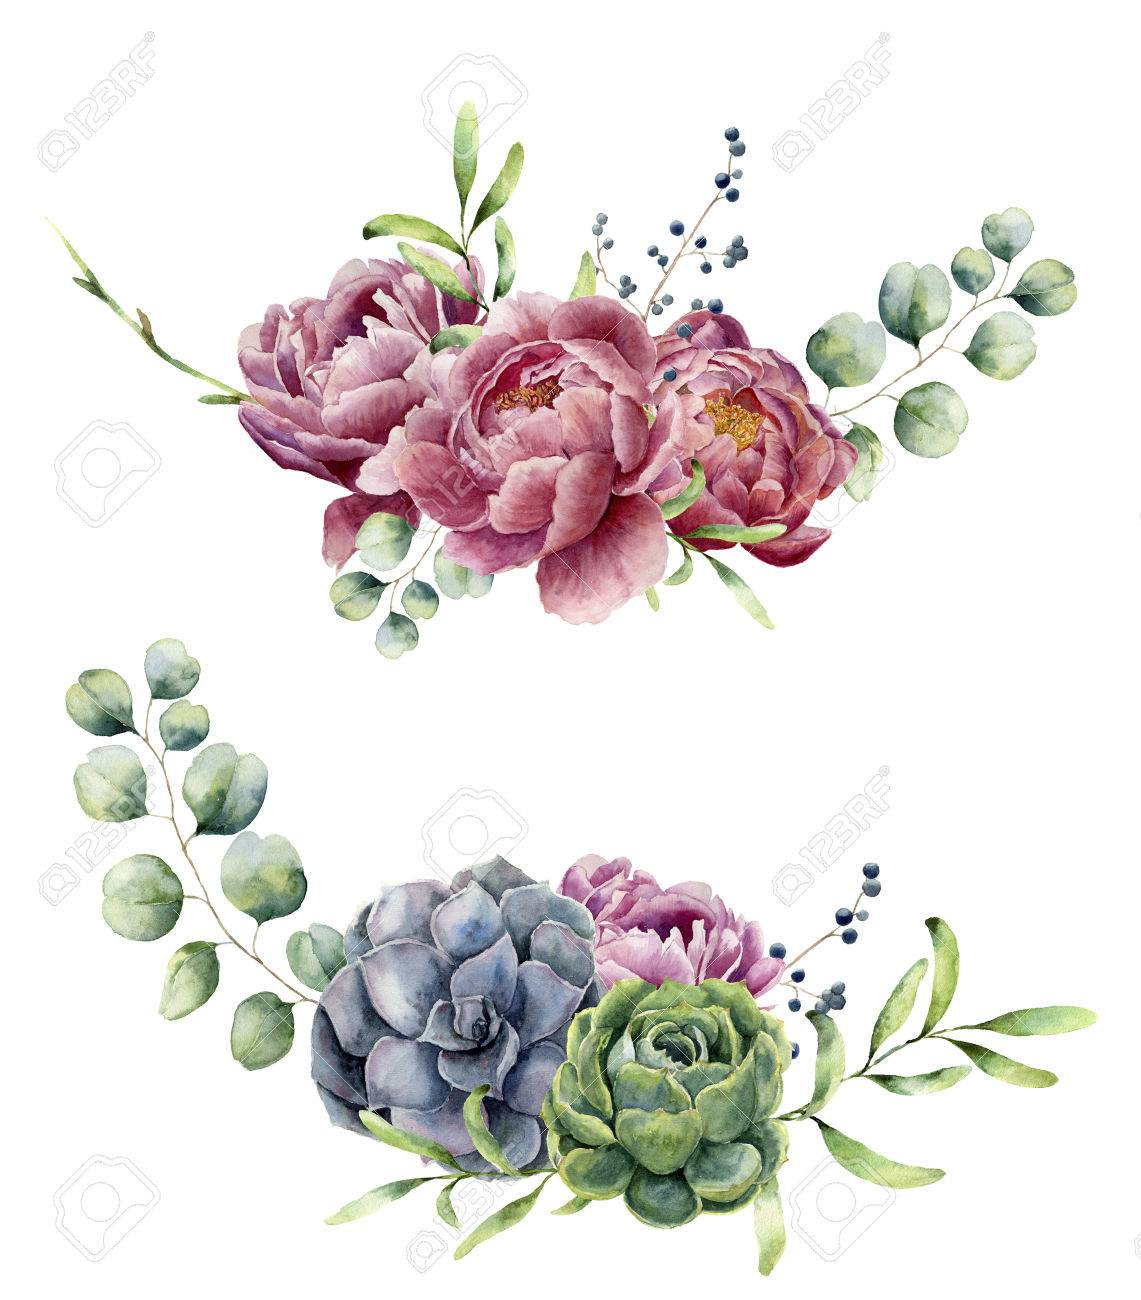 Watercolor floral composition isolated on white background. Vintage style posy set with eucalyptus branches, succulents, peony ,berries, greenery and leaves. Flower hand painted design - 71124636